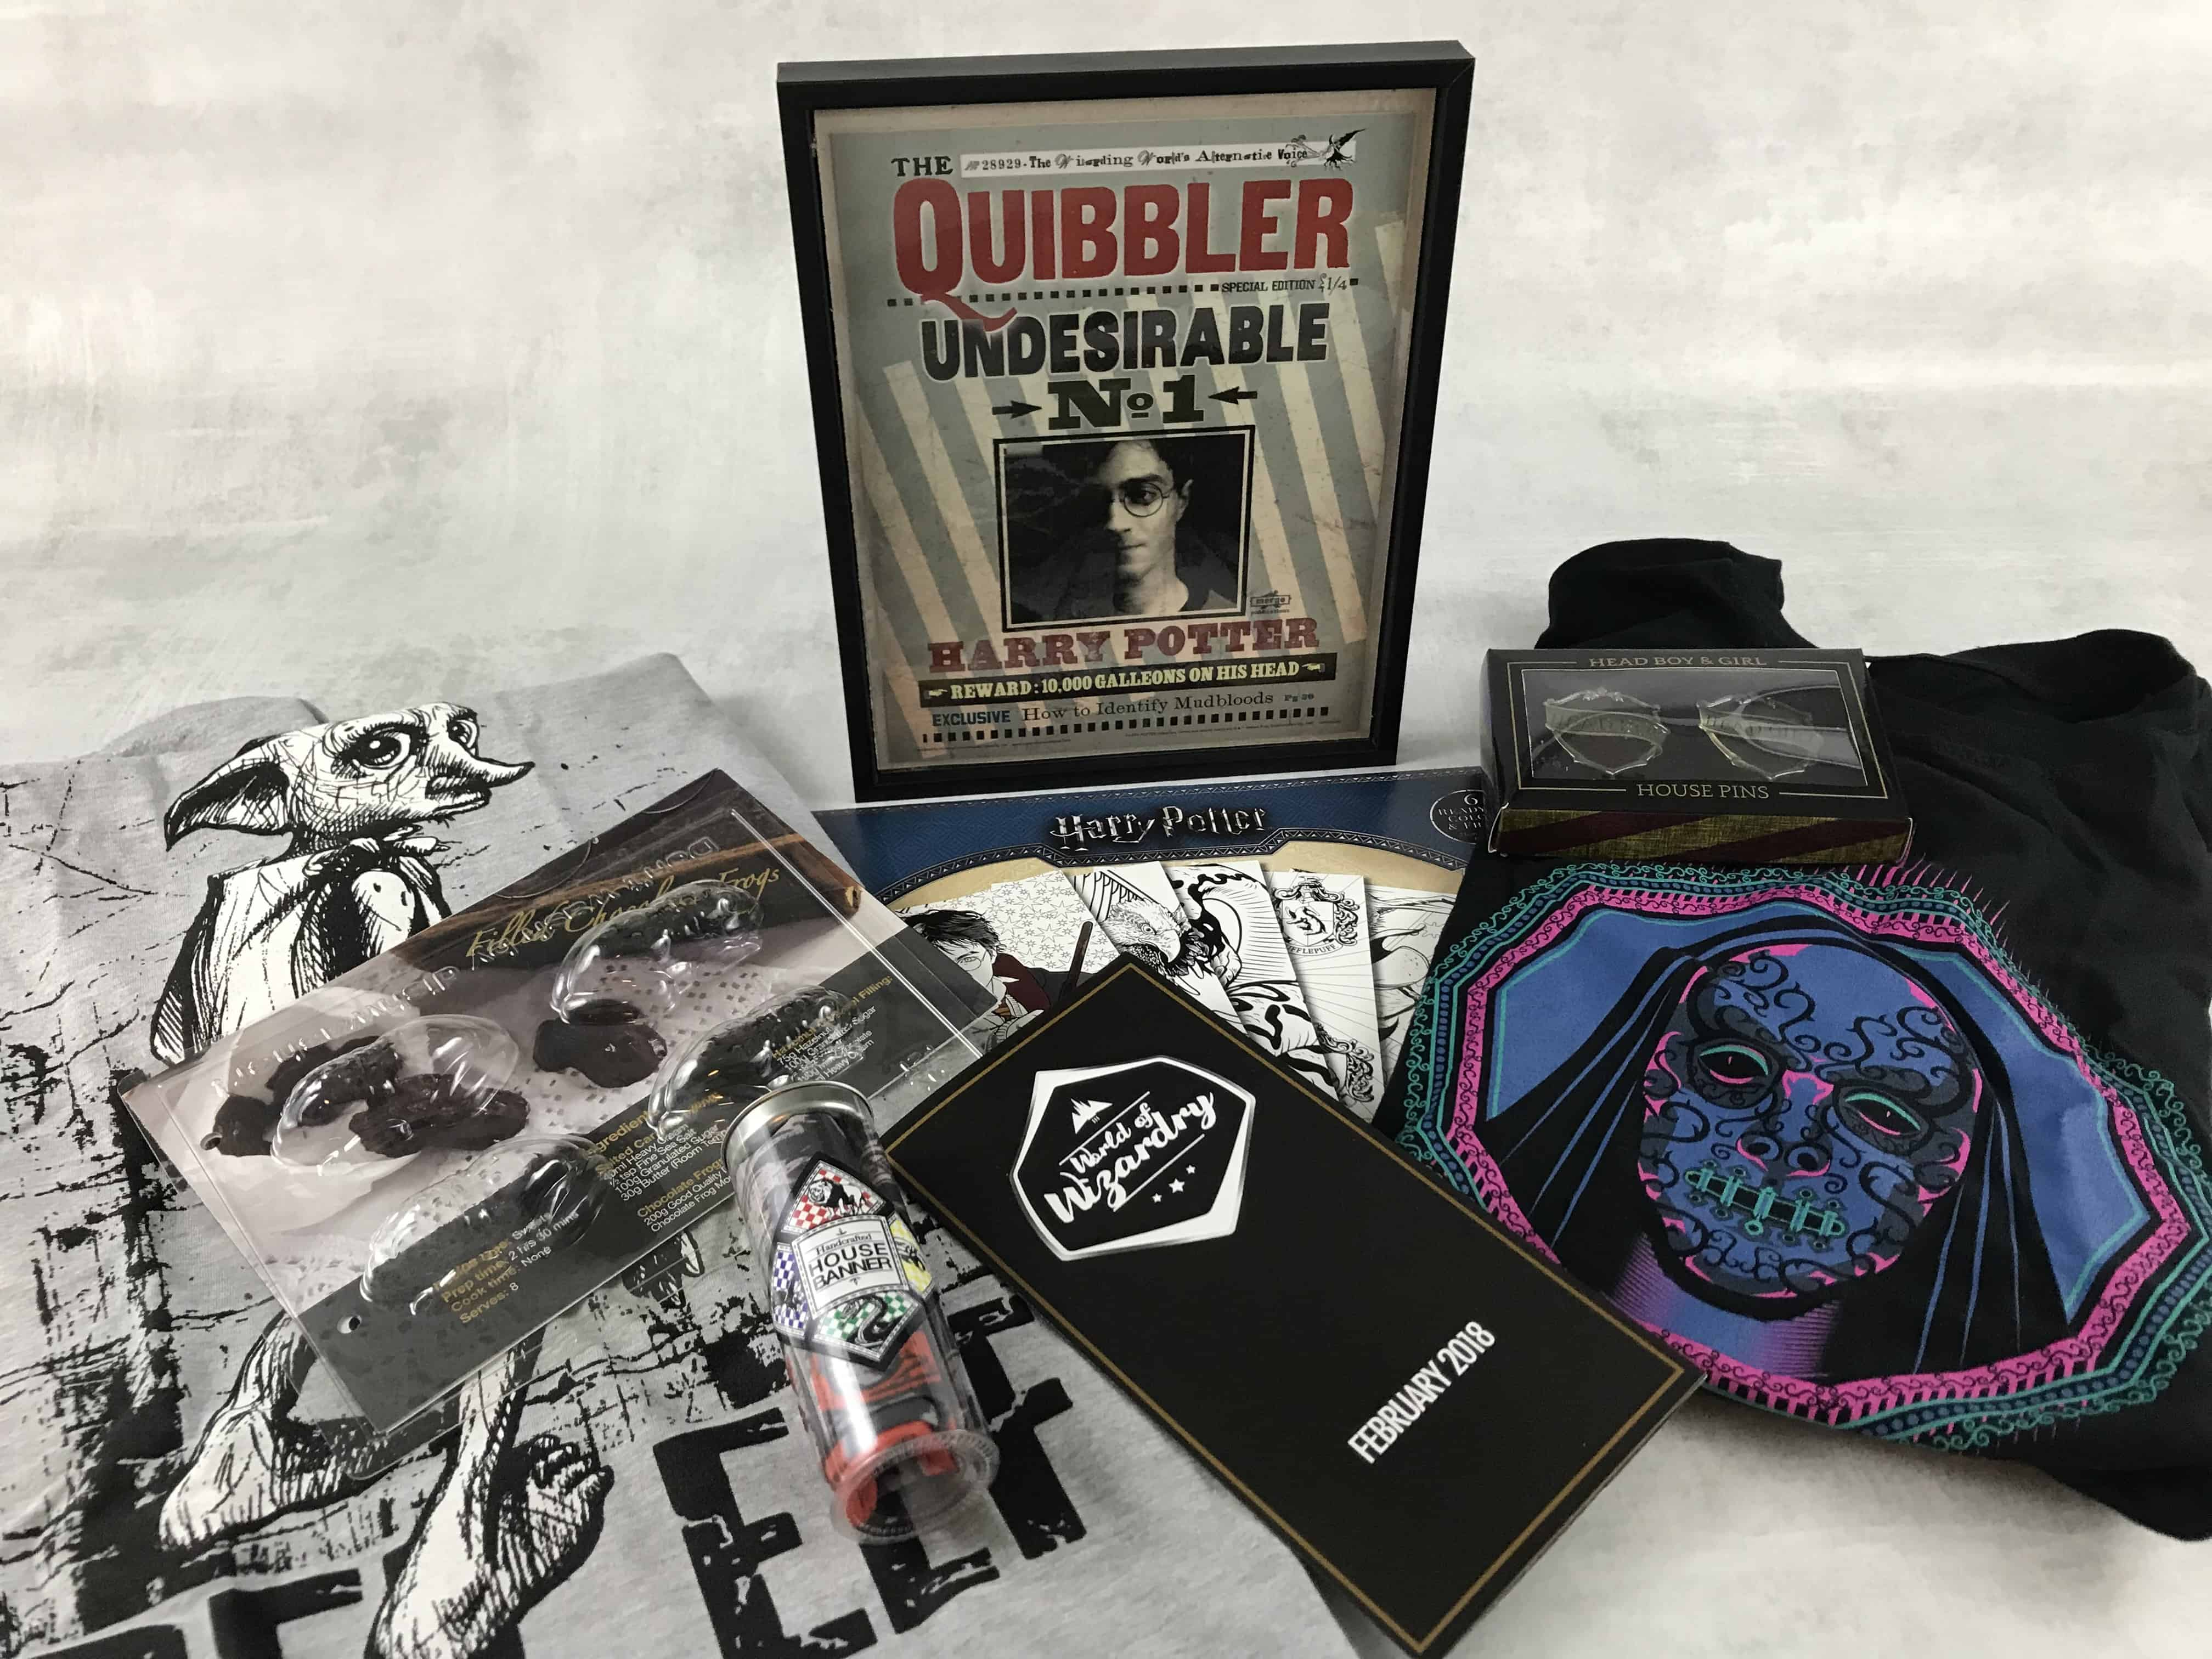 Geek Gear World of Wizardry February 2018 Subscription Box Review